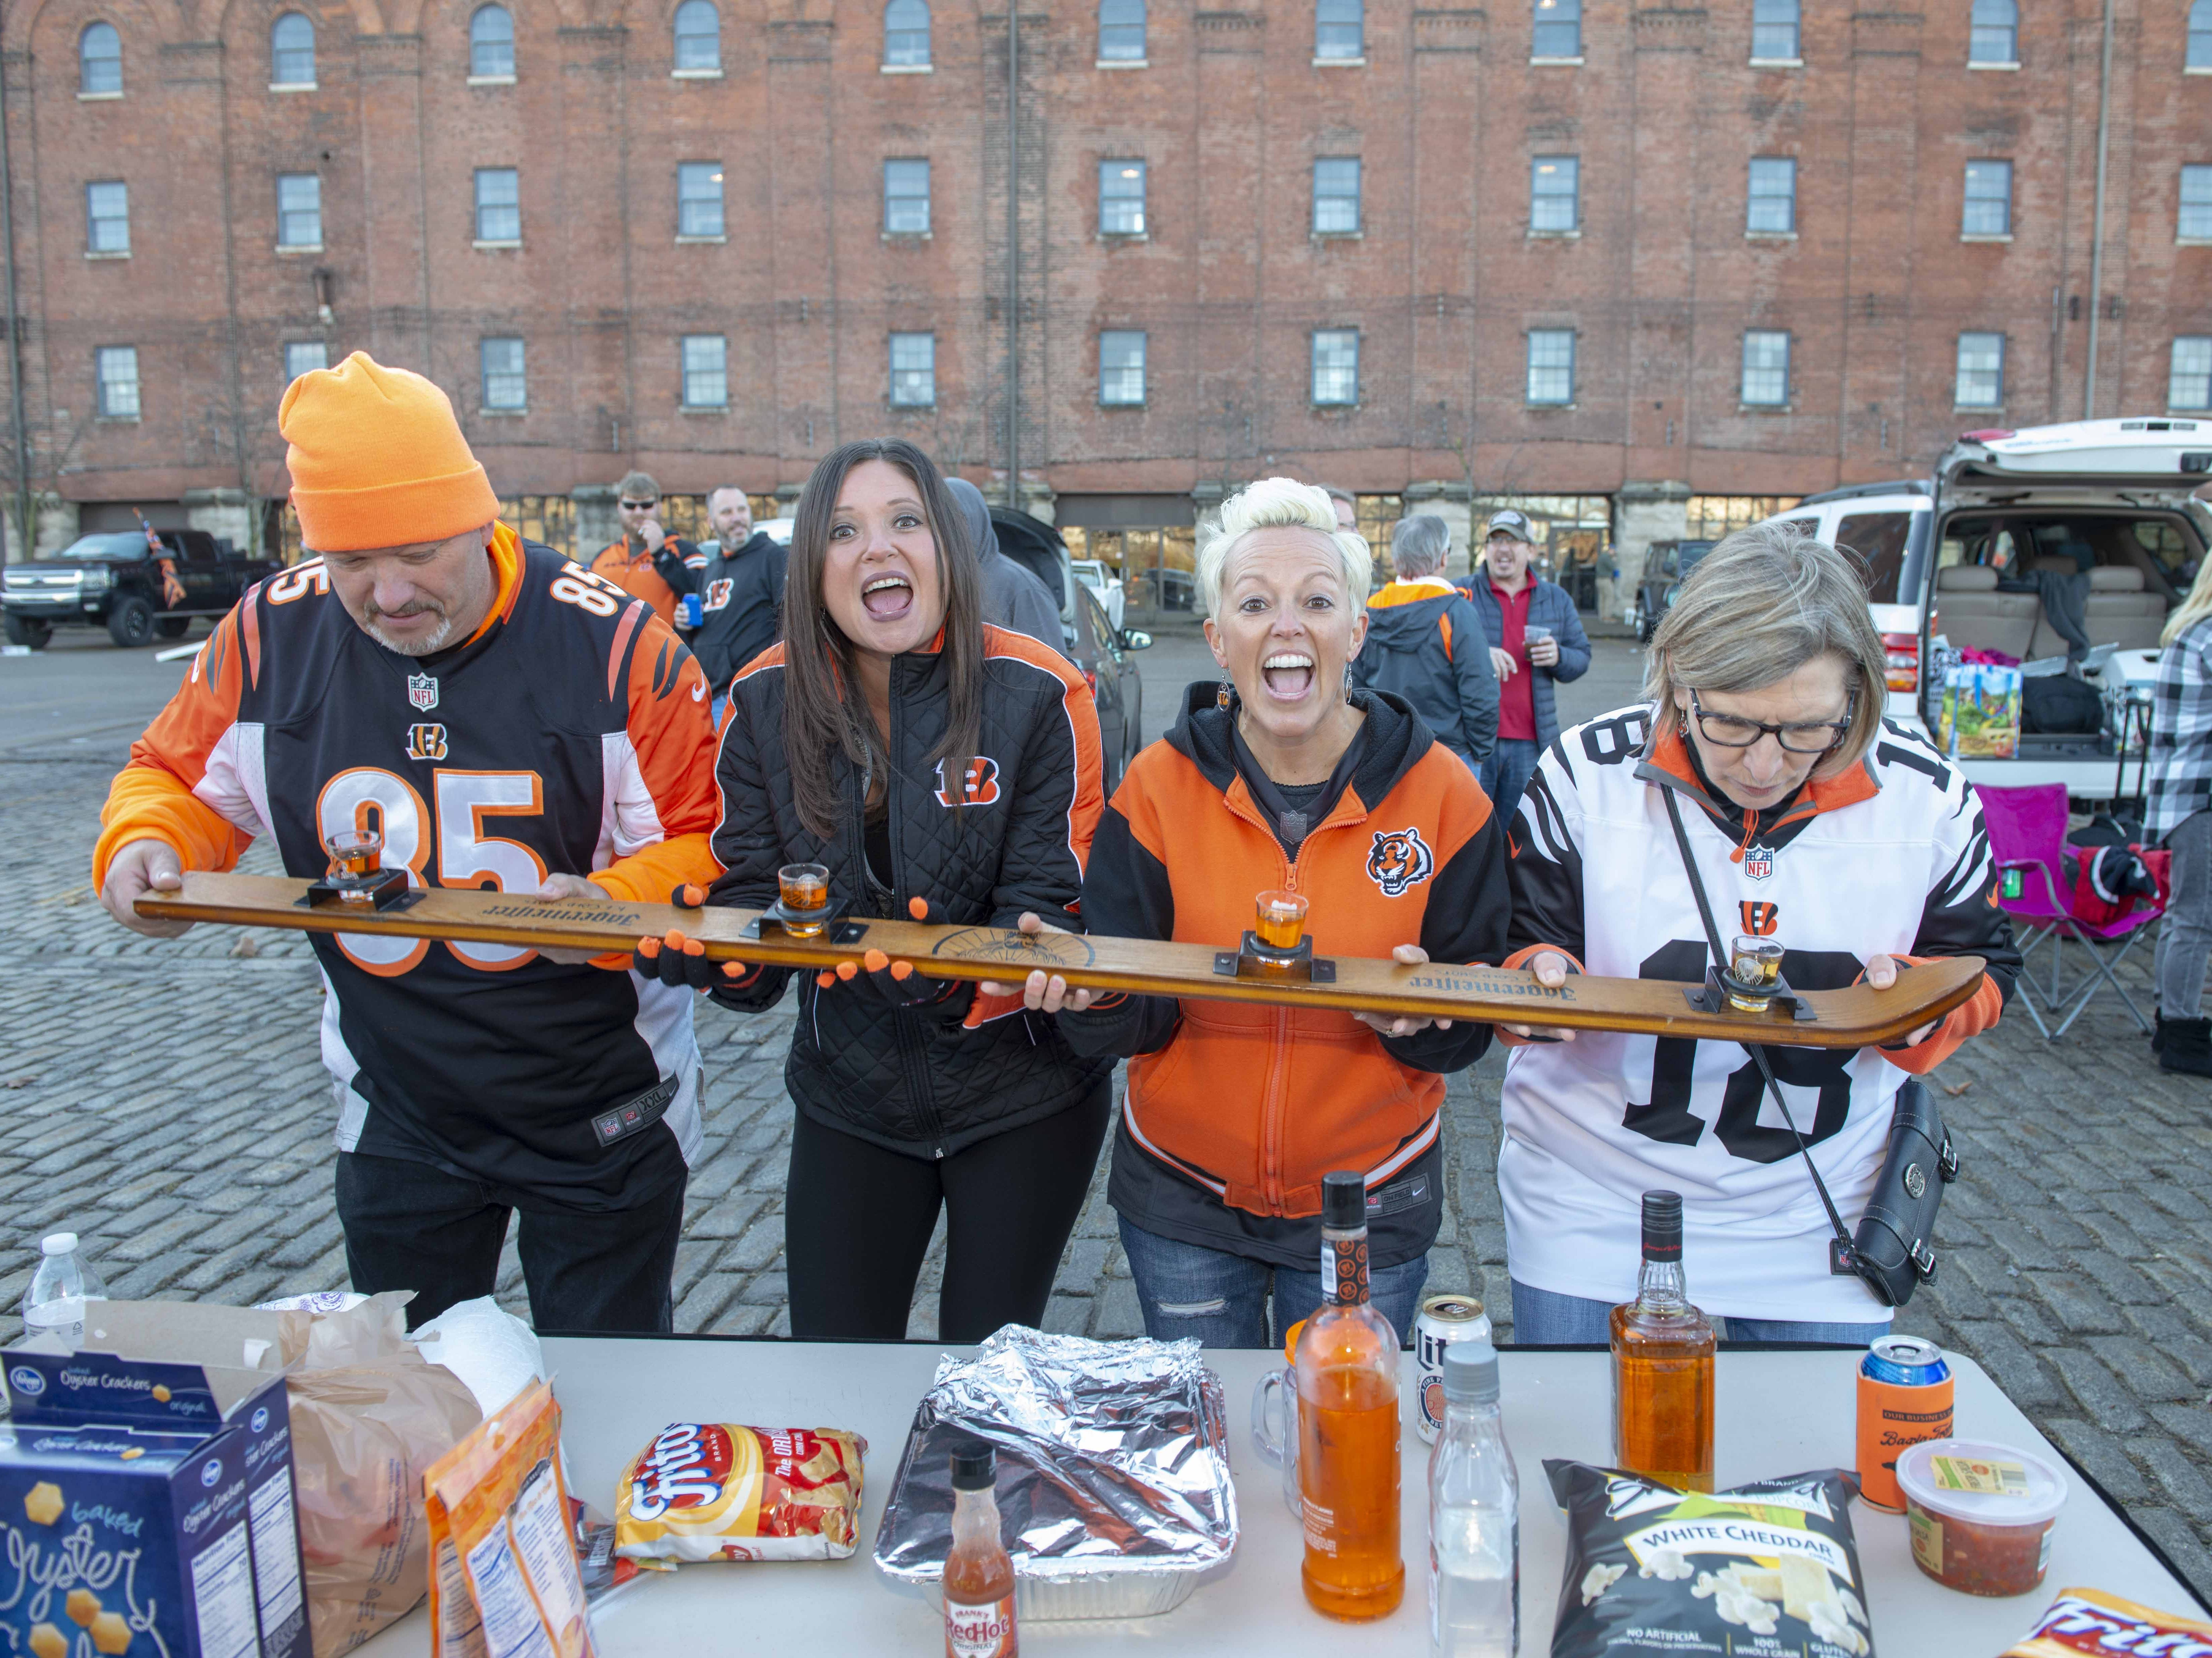 Cincinnati Bengals fans showed up for tailgating parties as the Cincinnati Bengals hosted the Denver Broncos at Paul Brown Stadium Sunday, December 2, 2018. George Wollam, Angela Bruce, DJ Hendricks and Joanne Bodder with a flight of VU Vodka.